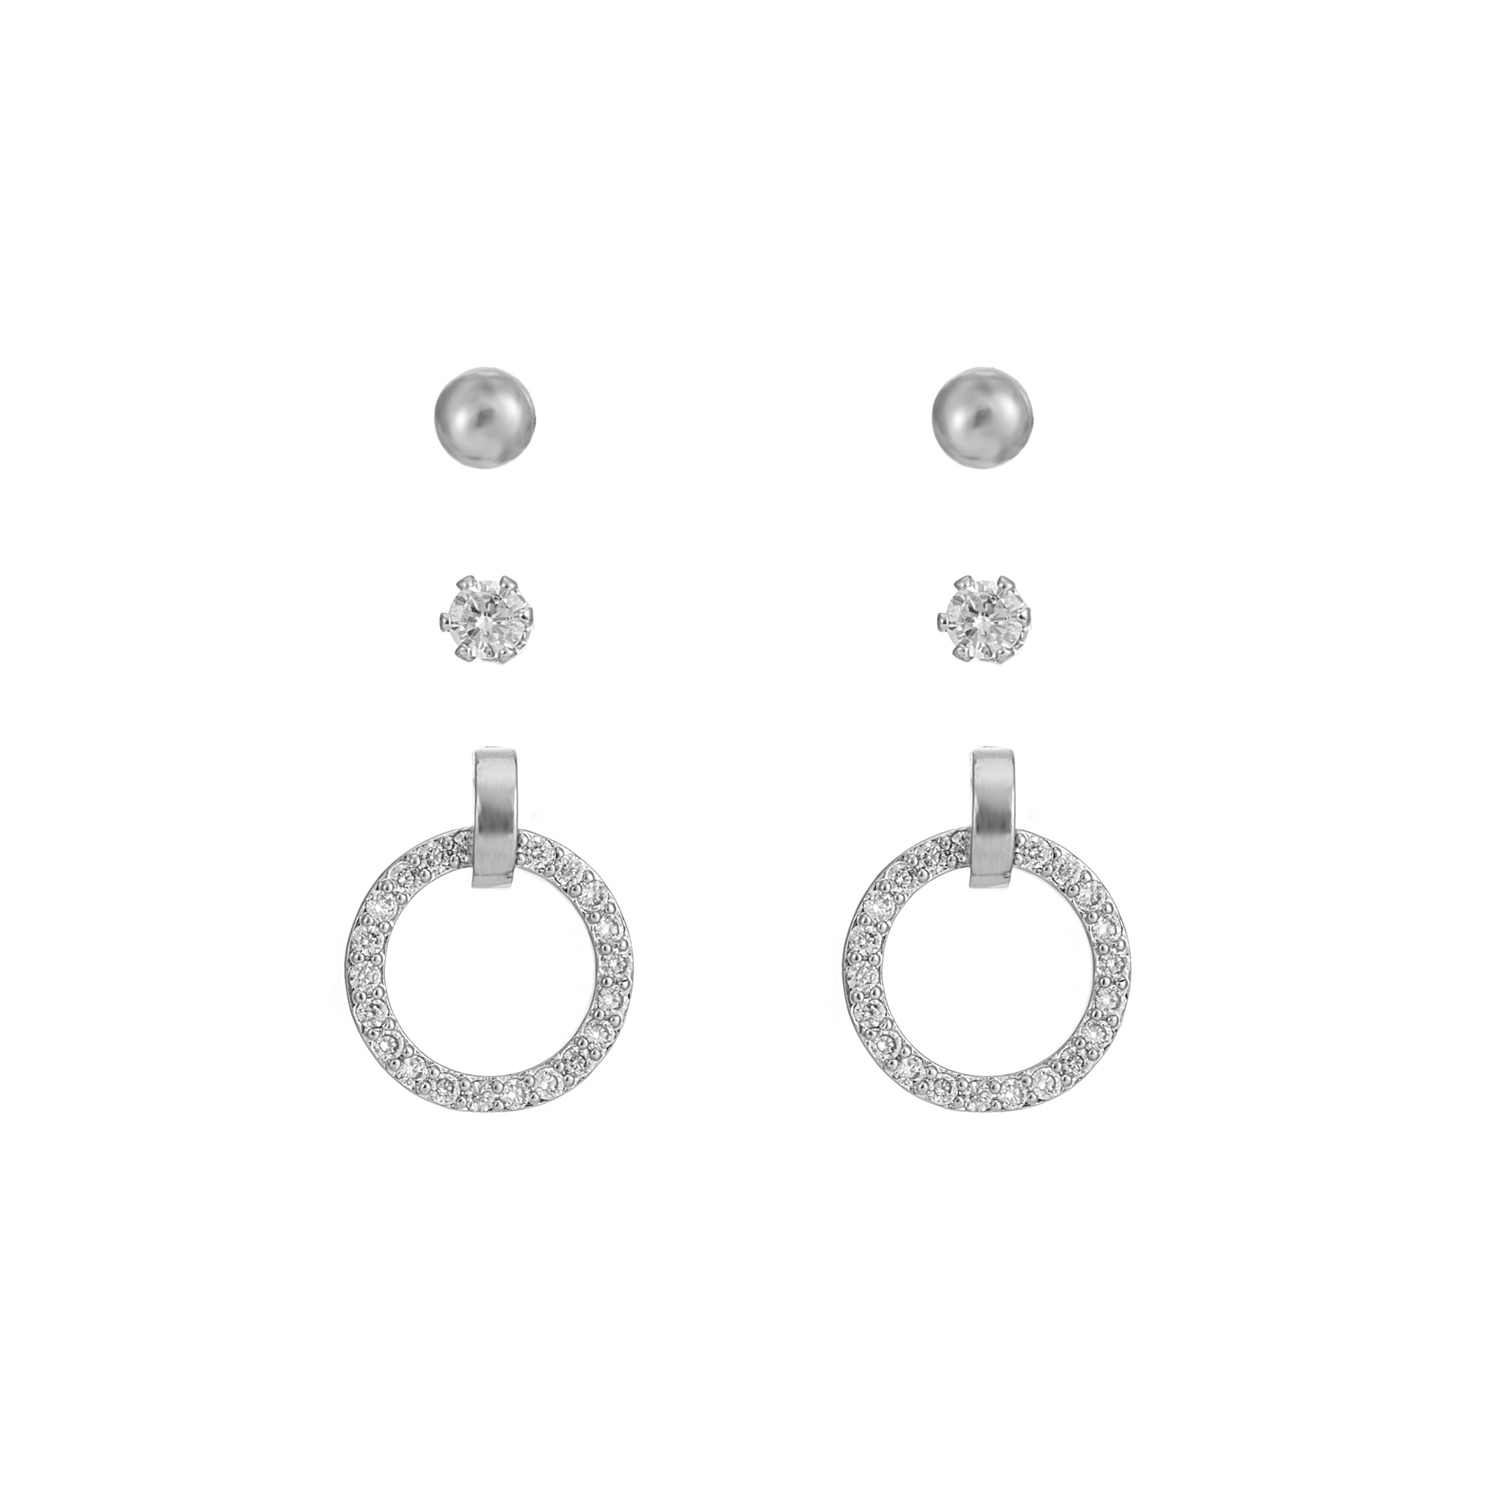 SILVER Halo Sparkle Earring Gift Set